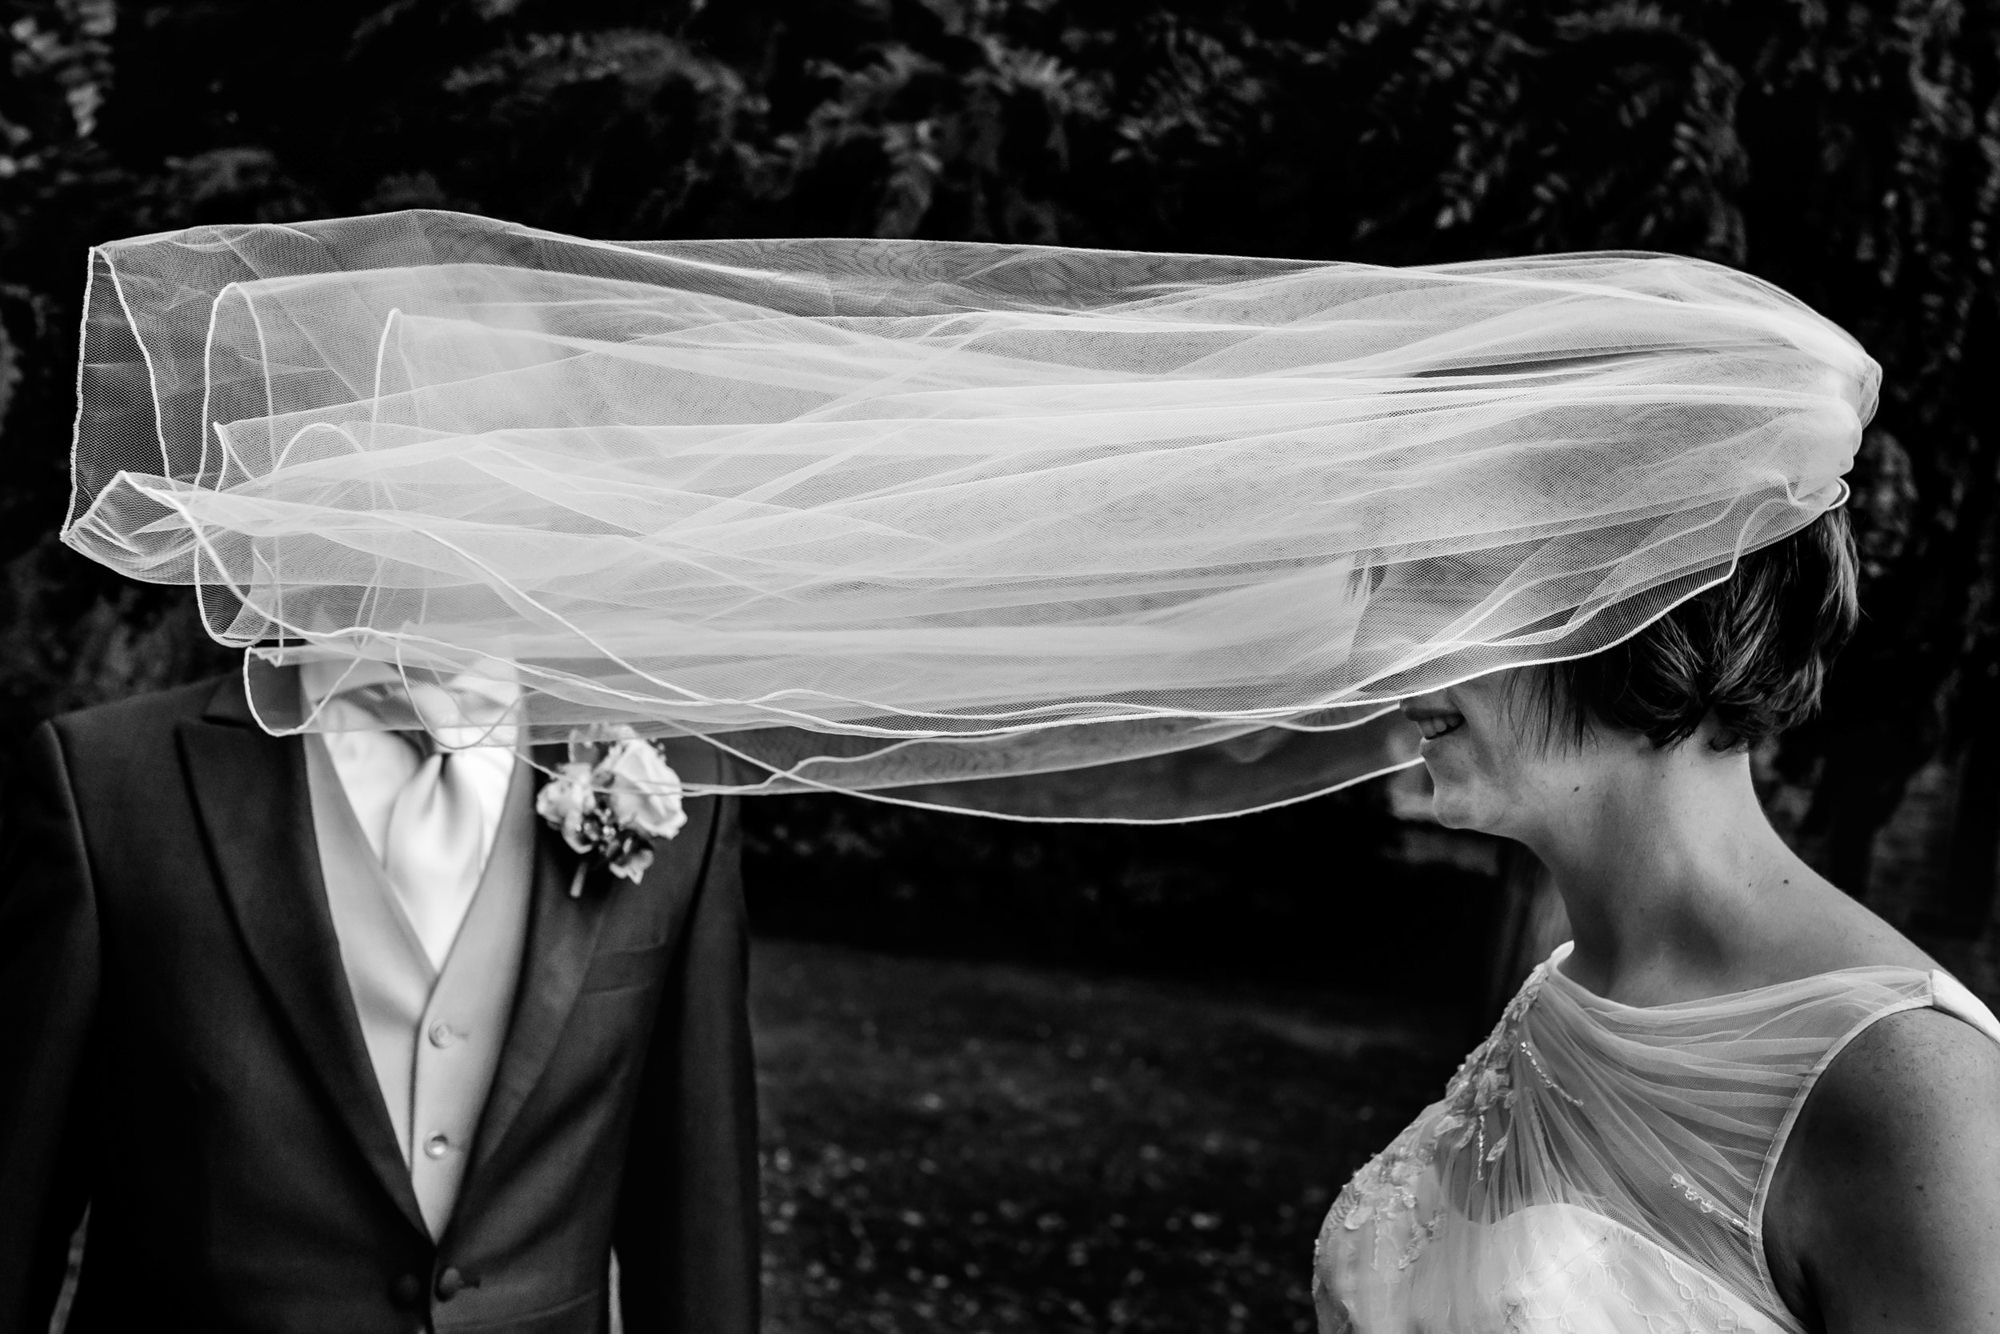 Brides veil flies in front of grooms face - photo by Philippe Swiggers